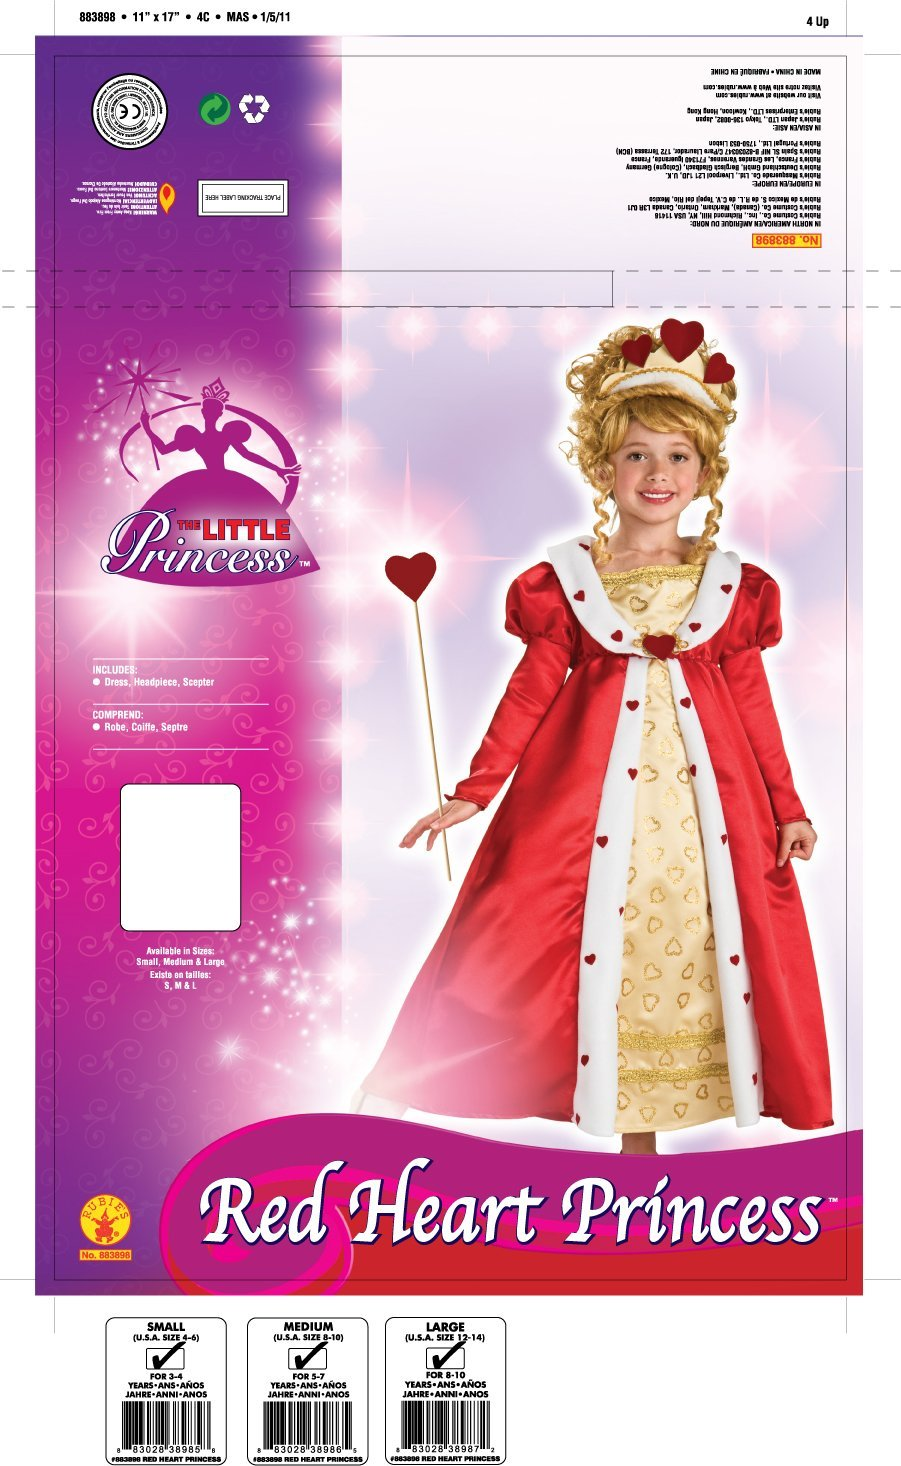 Image 1 of Rubie's Red Heart Princess Costume - Medium (8-10) or Large (12-14) - Rubies Lar